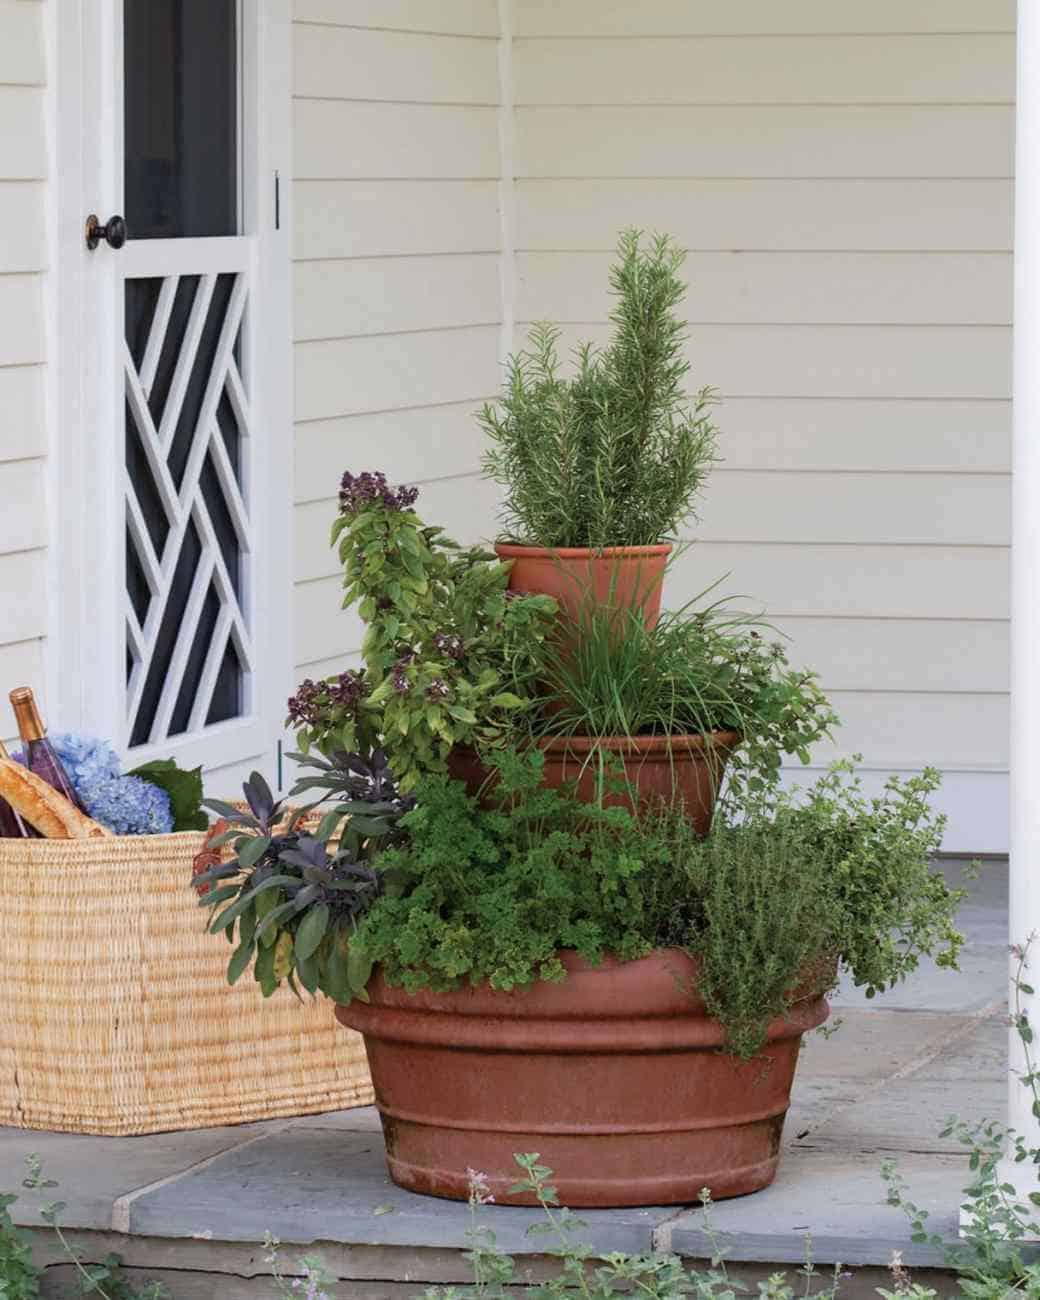 Herb Planter Pot 10 Ways To Show Off Your Green Thumb With Cool Diy Planters